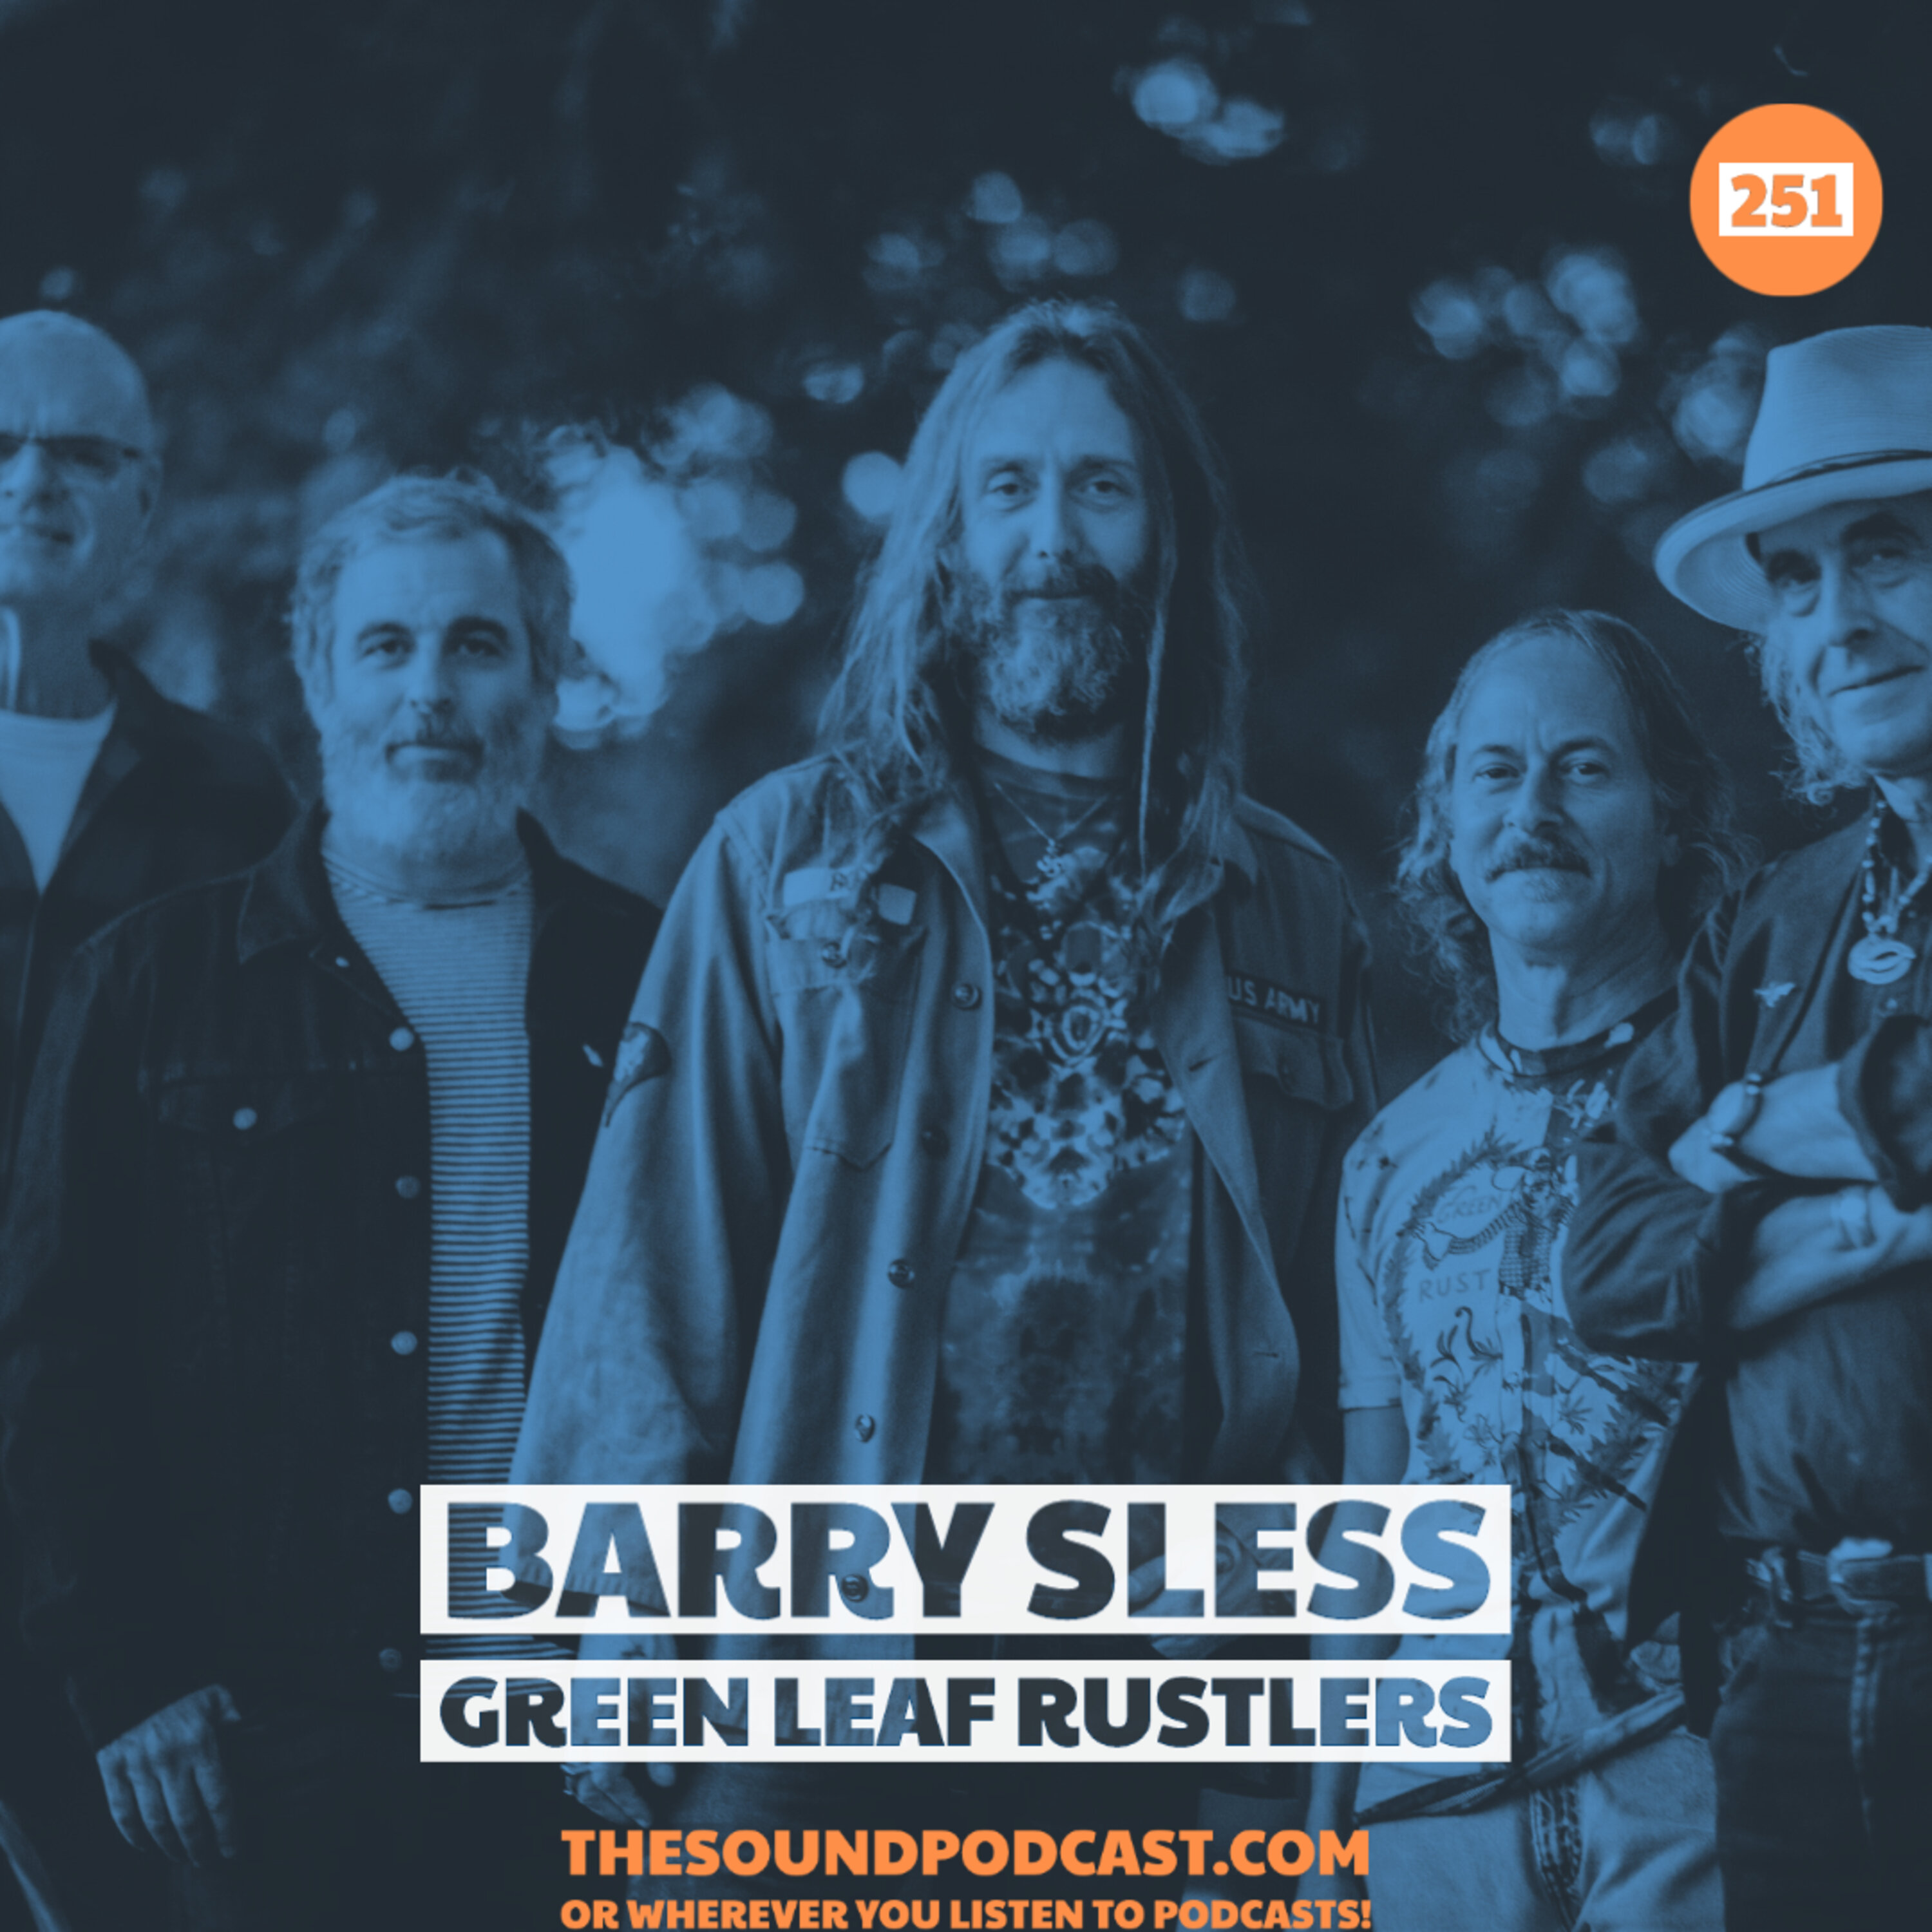 Barry Sless of Green Leaf Rustlers